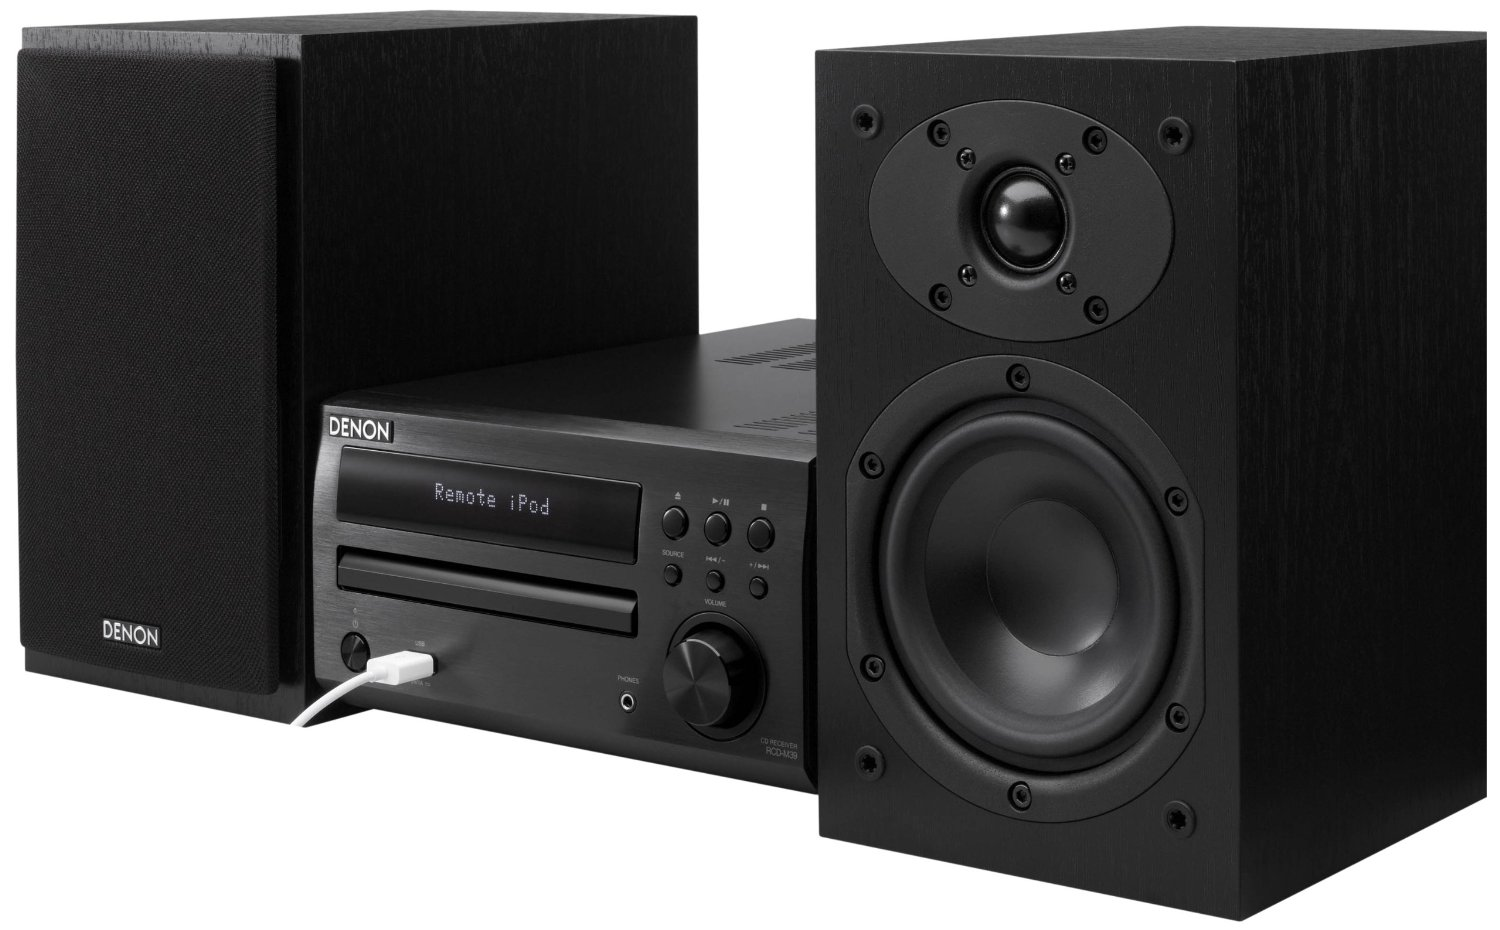 Best Sound System For Media Room